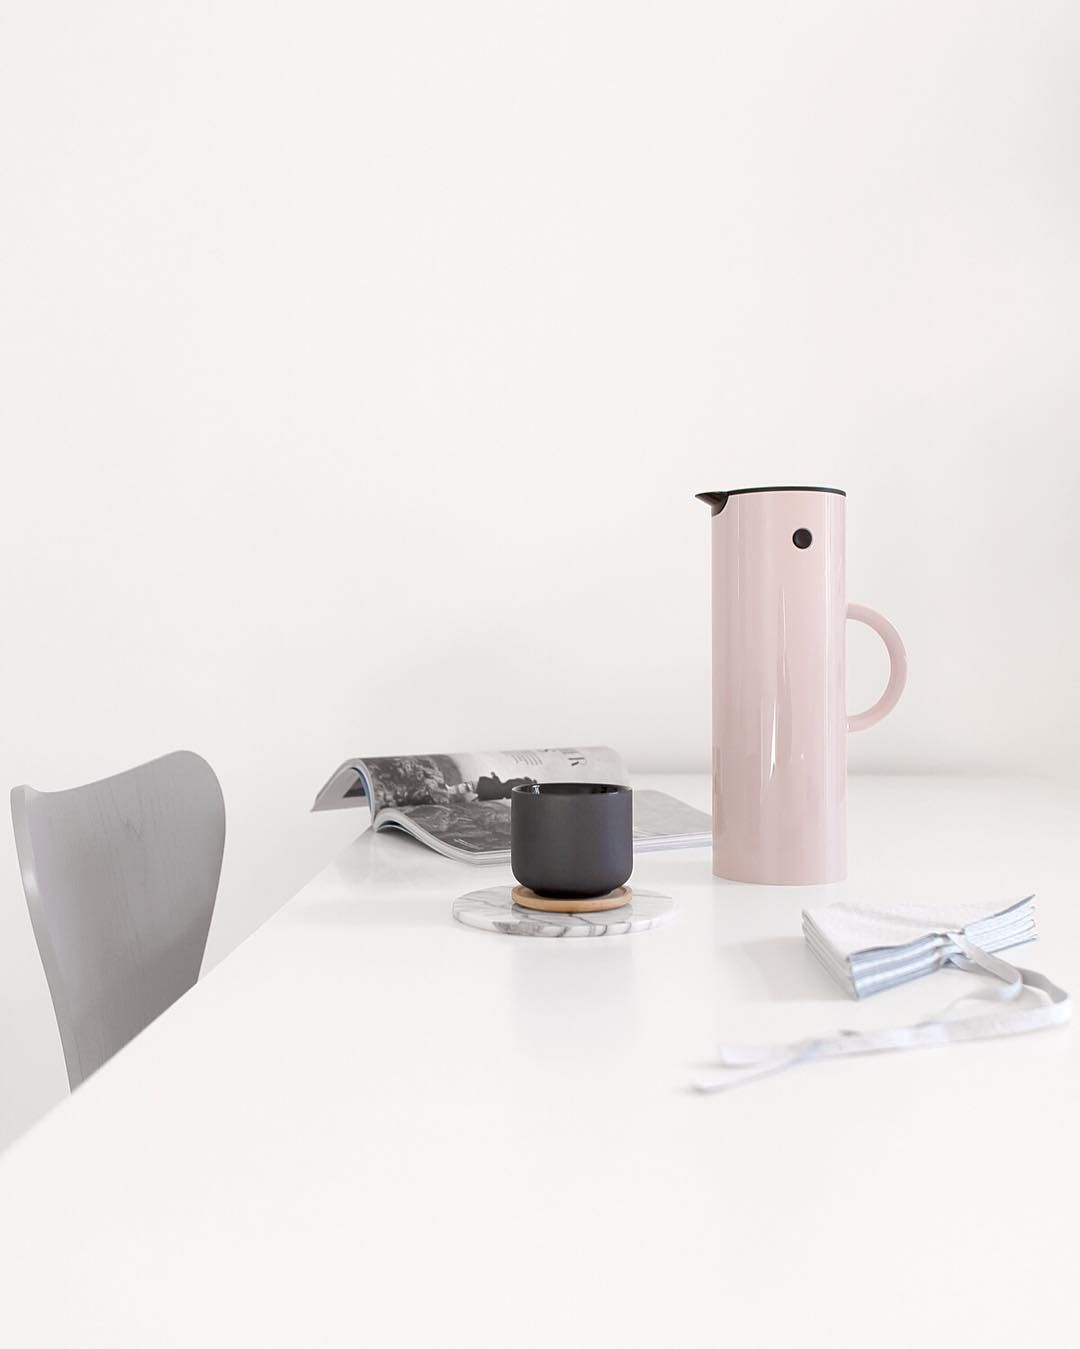 Keeping my Sunday coffee warm with #MyEM77 in lavender from #Stelton